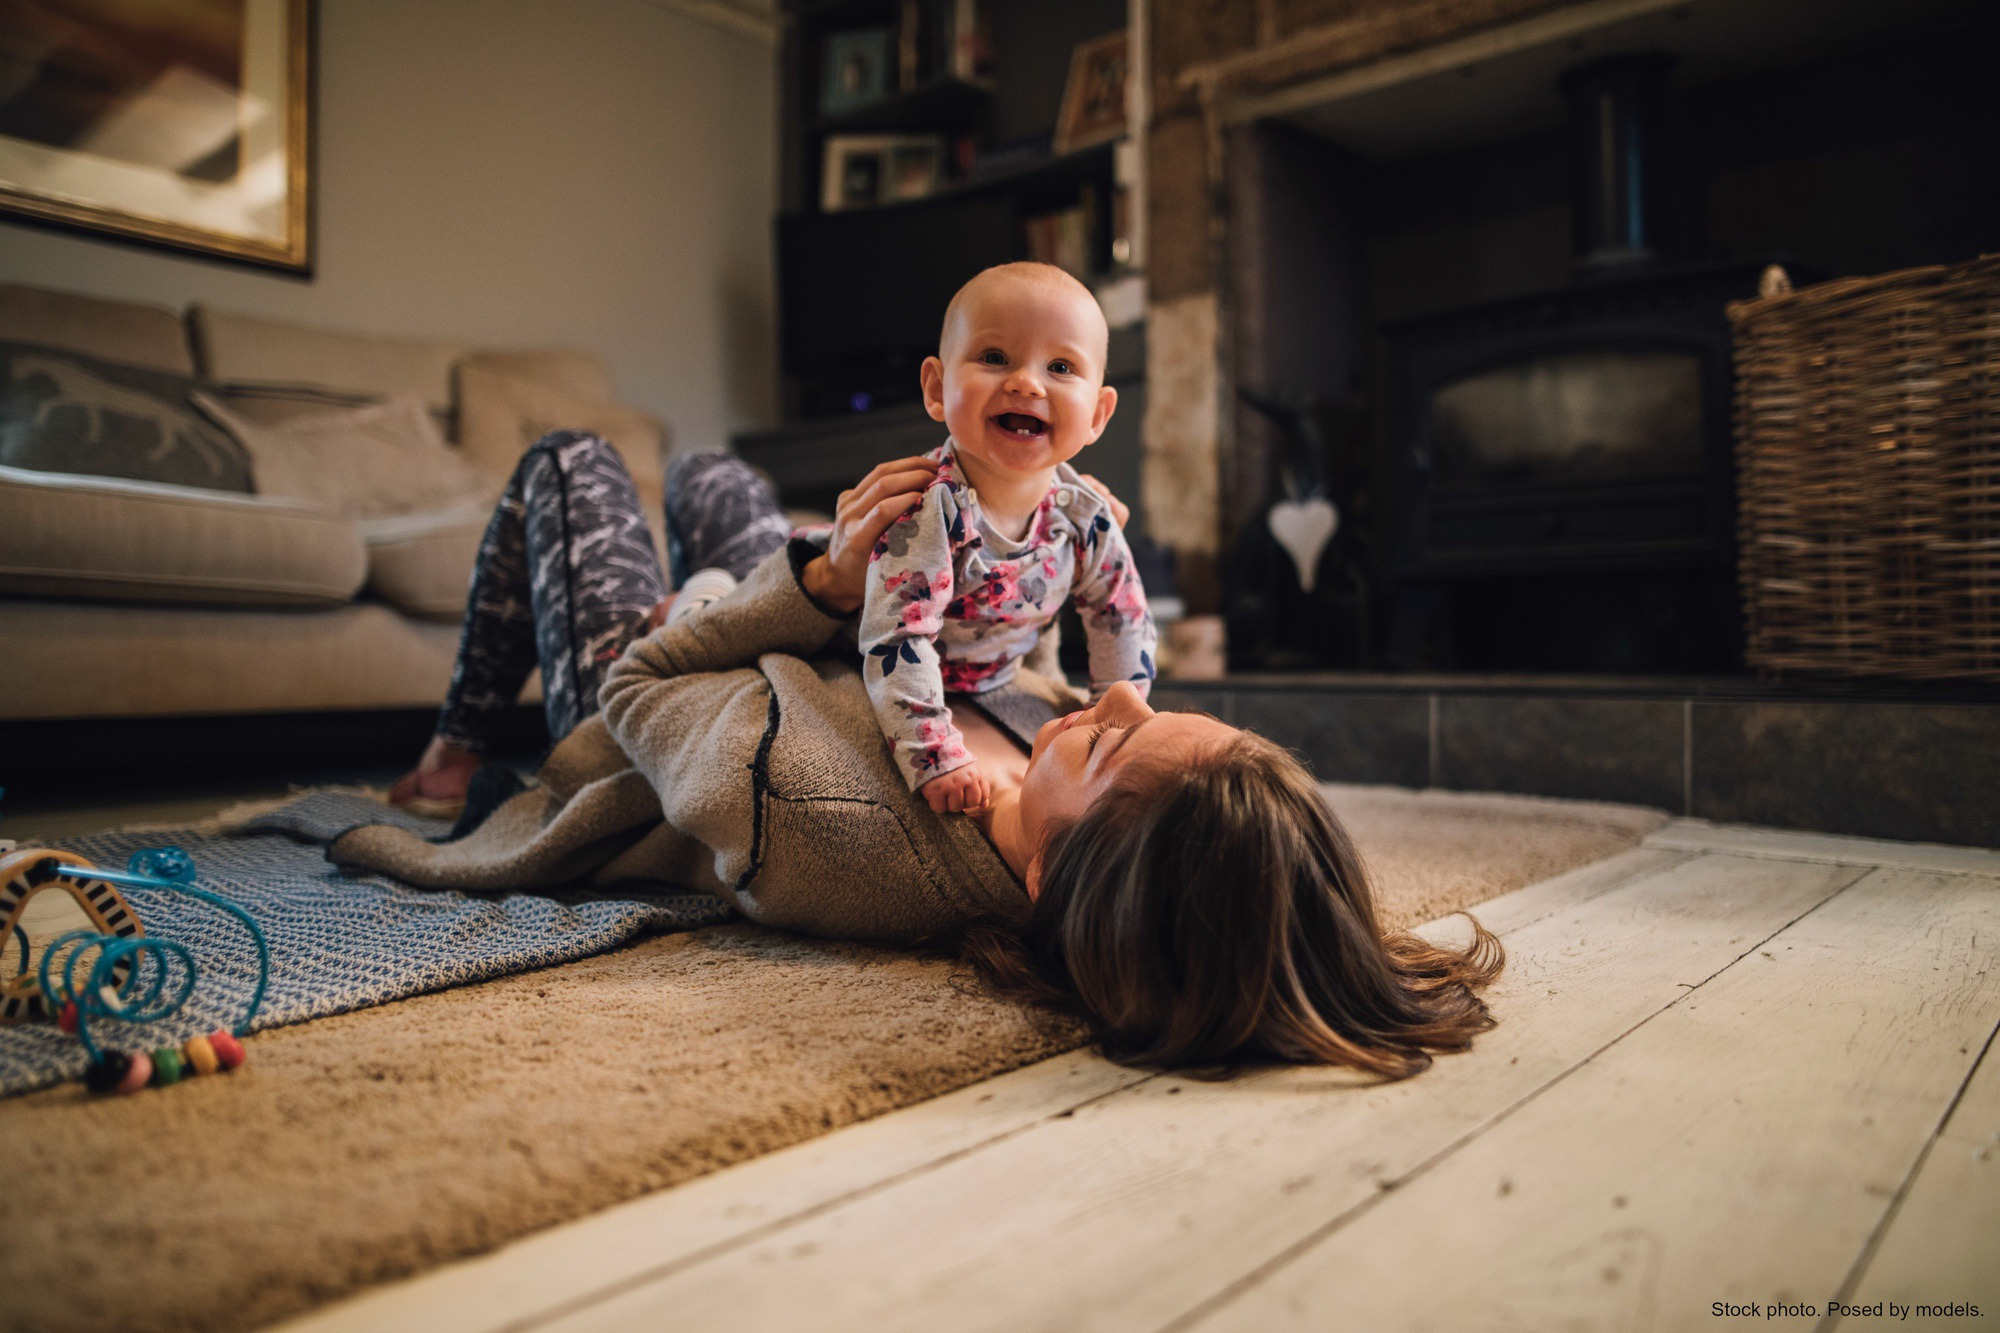 Mother playing with infant on living room floor. Stock photo. Posed by models.